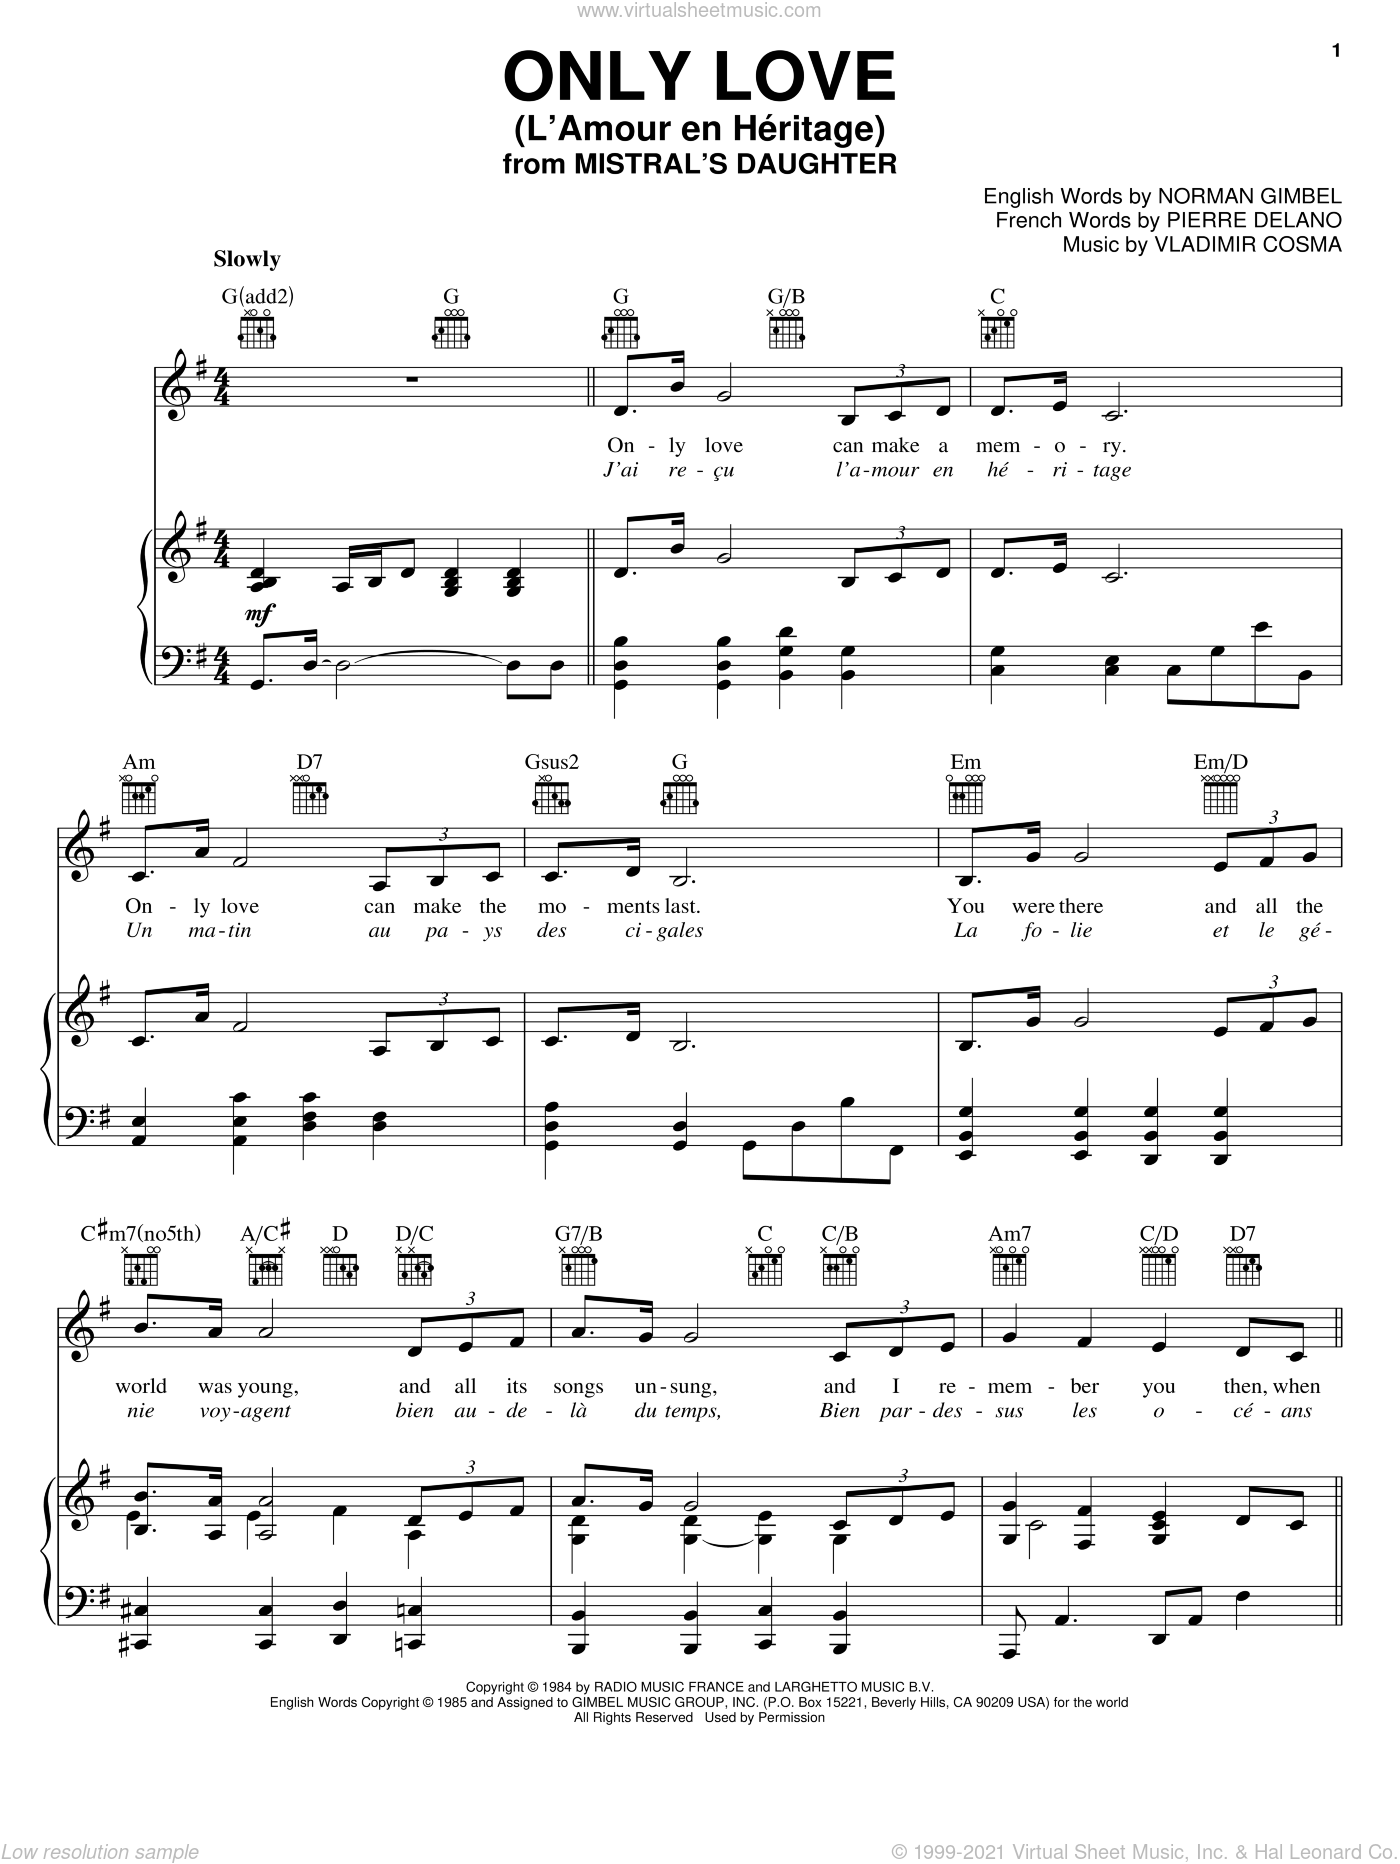 Only Love (L'Amour en Heritage) sheet music for voice, piano or guitar by Vladimir Cosma